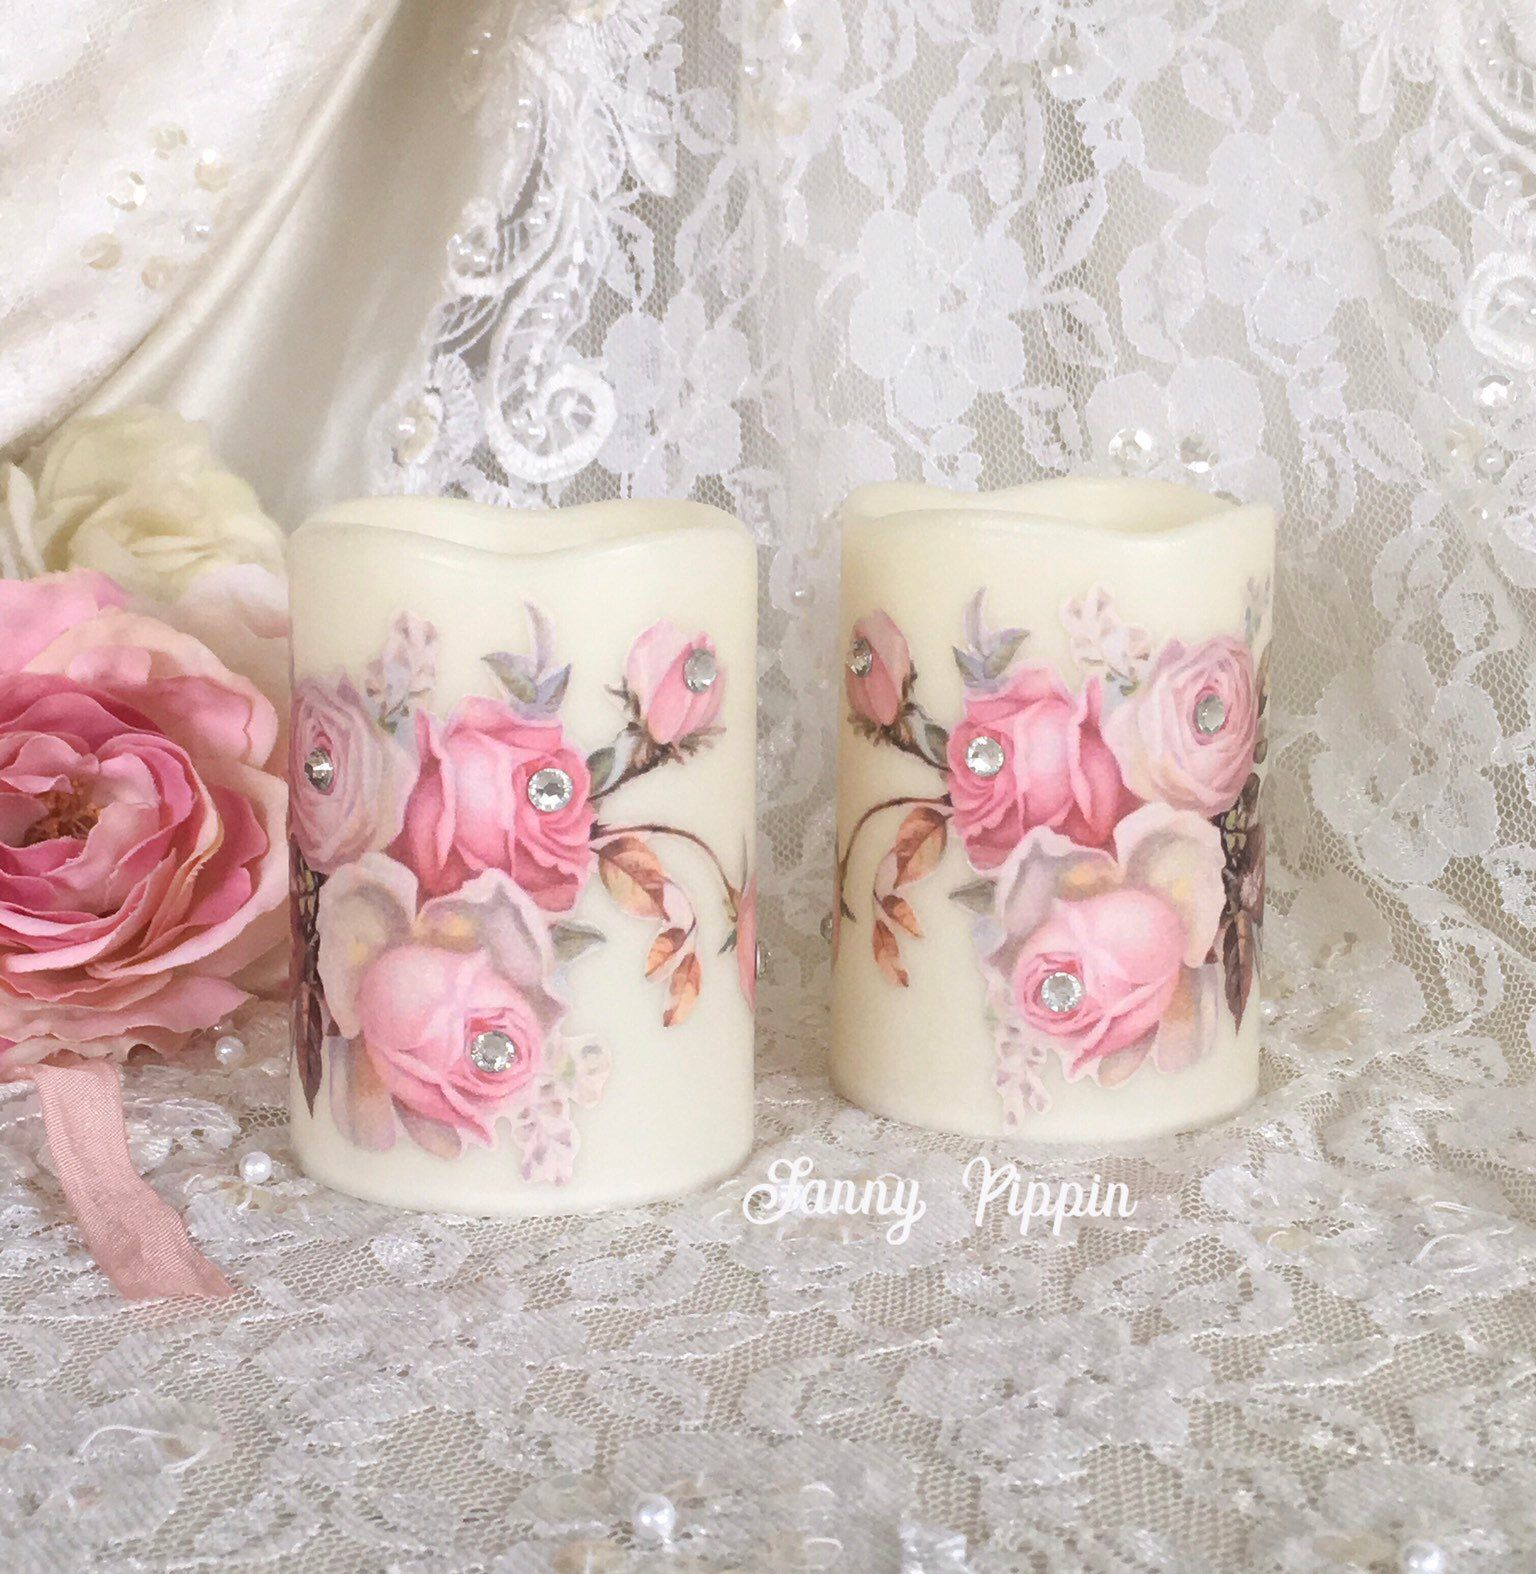 Shabby Pink Flameless Candles Roses Wax Led Candles Floral Candles Shabby Pink Decor Shabby Cottage Chi Floral Candle Shabby Chic Cottage Shabby Chic Pink